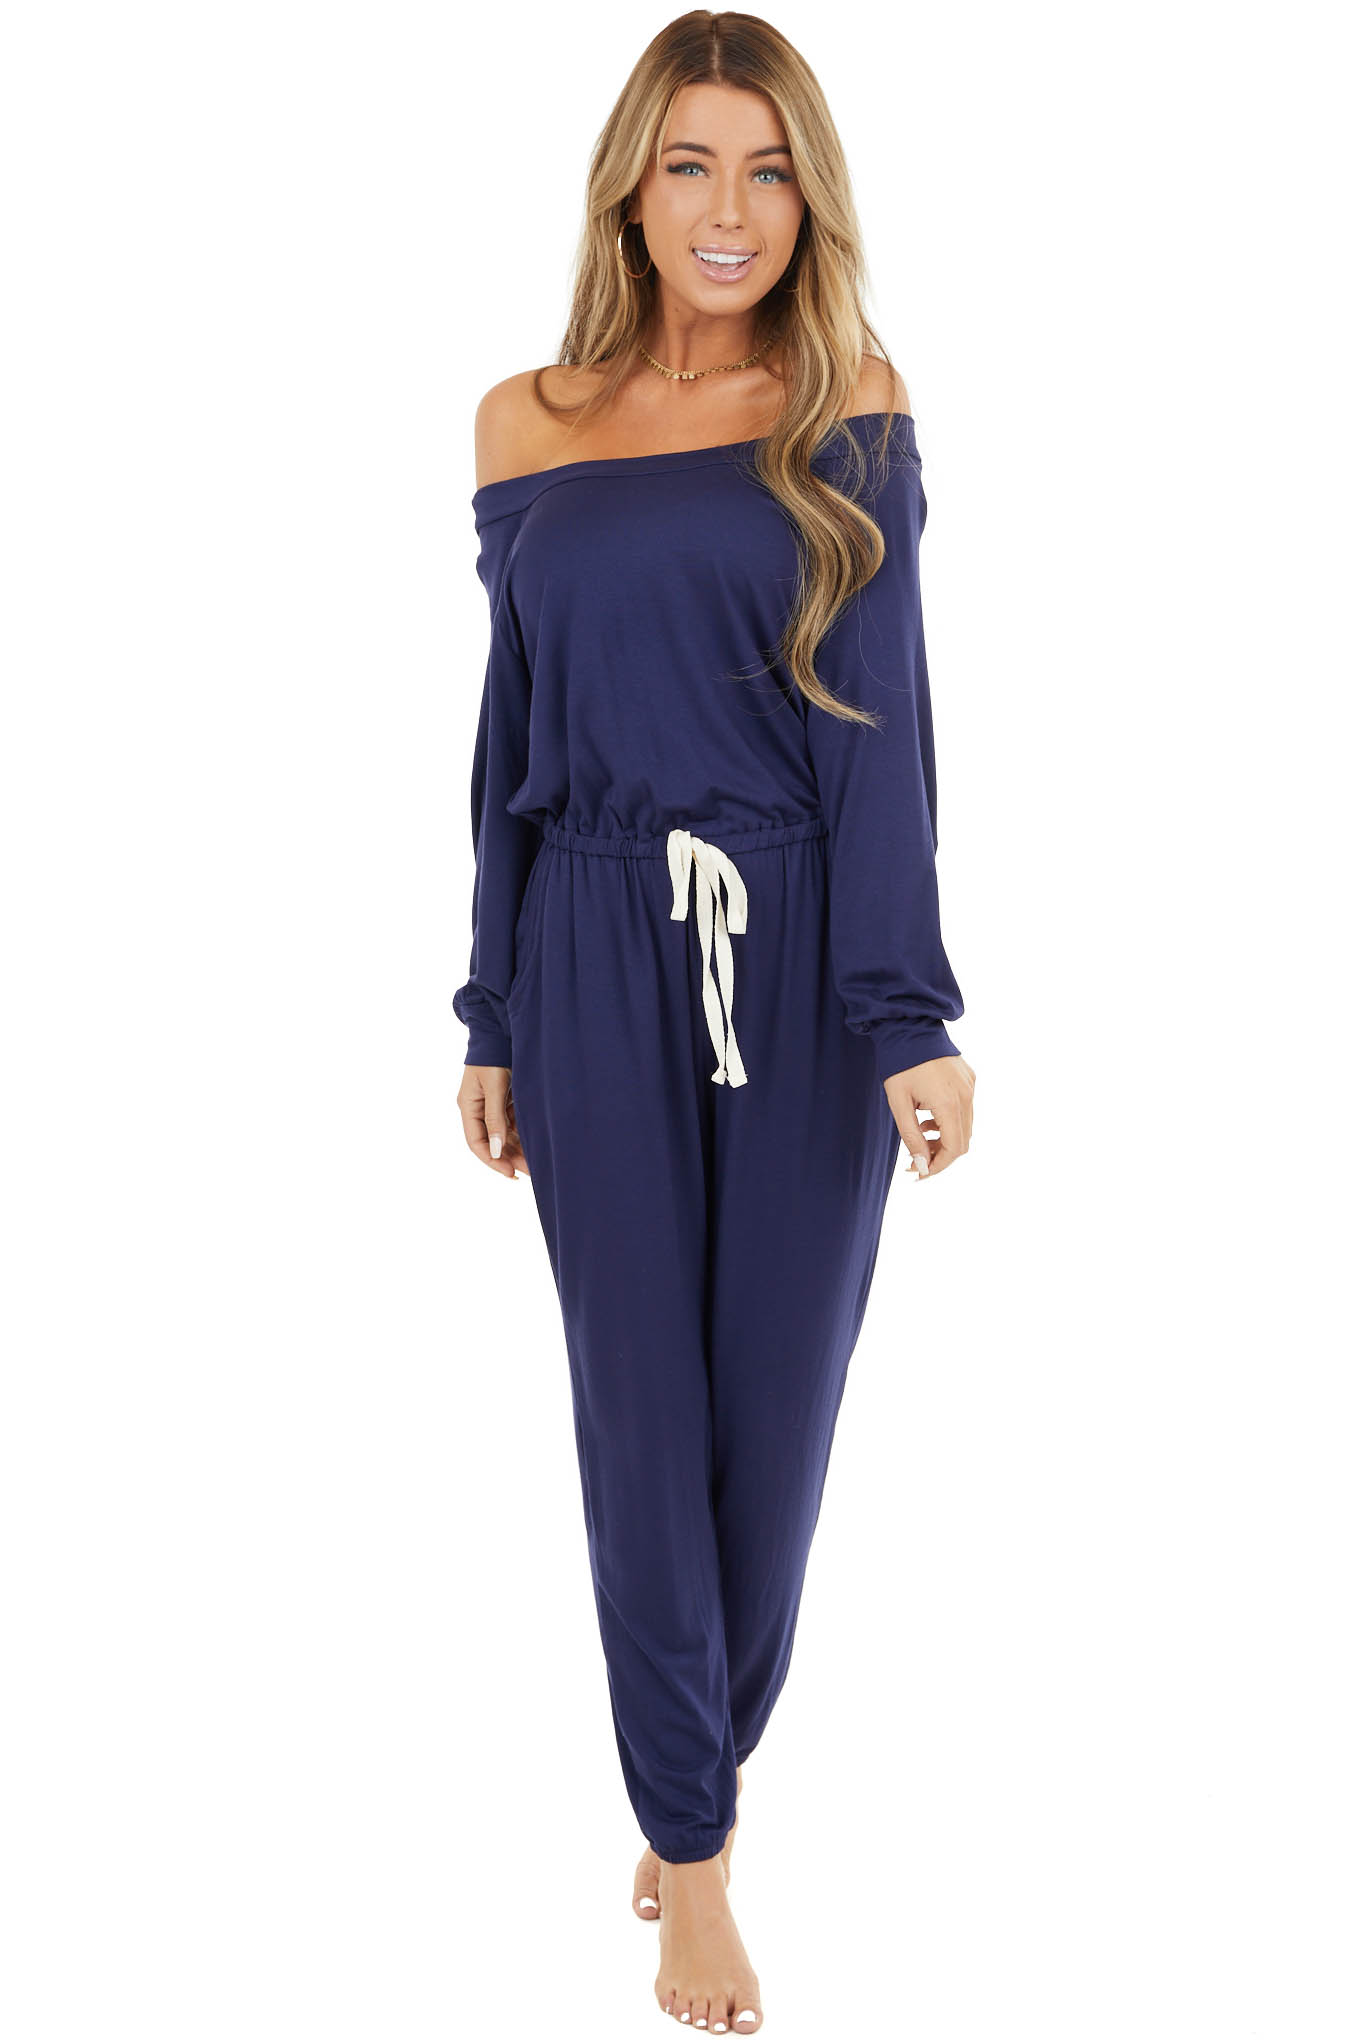 Navy Blue Off The Shoulder Knit Jumpsuit with Cinch Waist